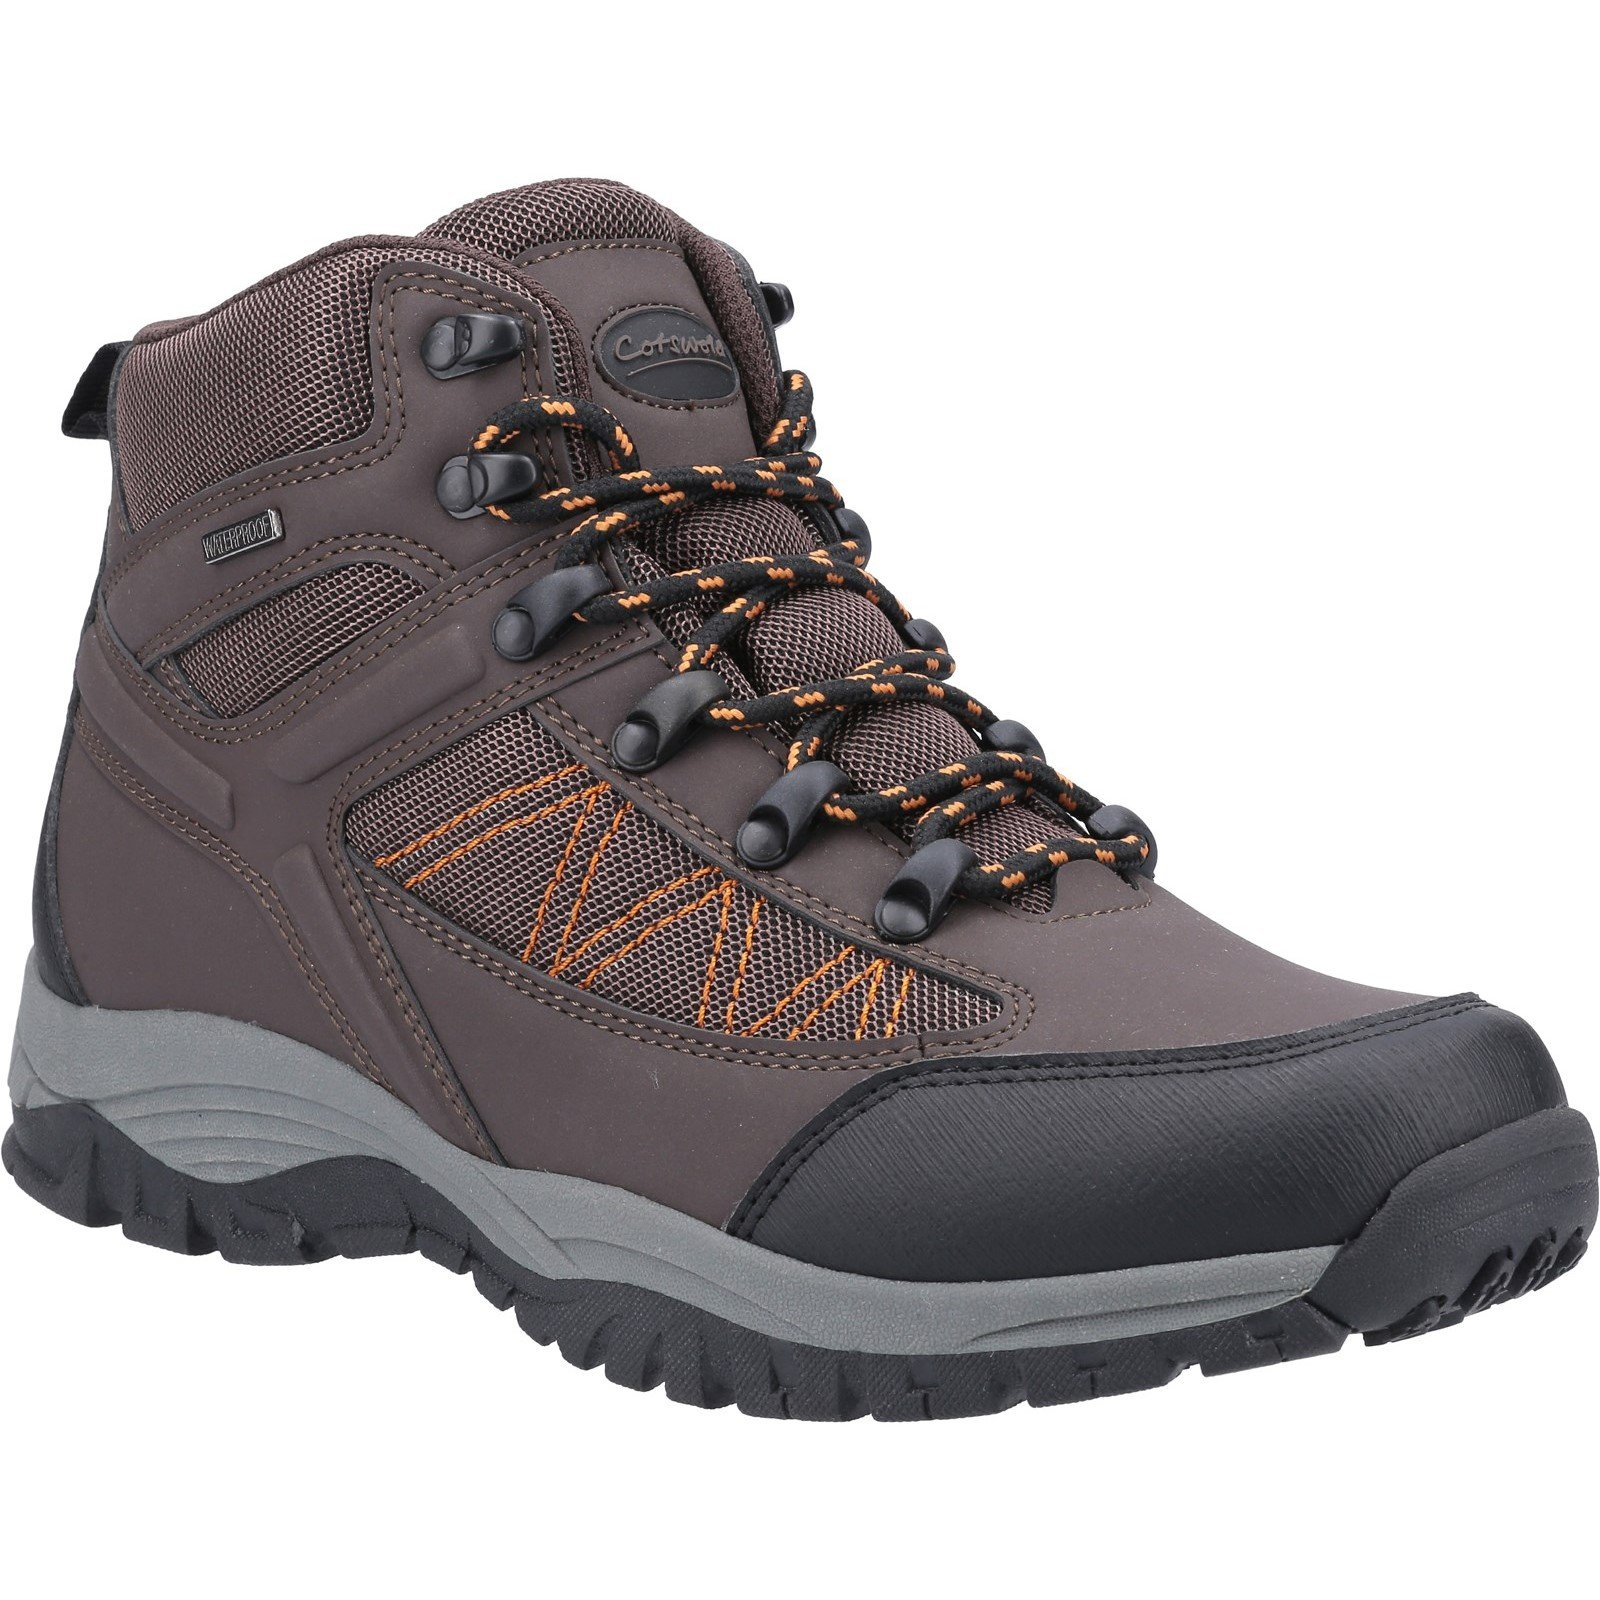 Cotswold Men's Maisemore Hiking Boot Brown 32985 - Brown 8